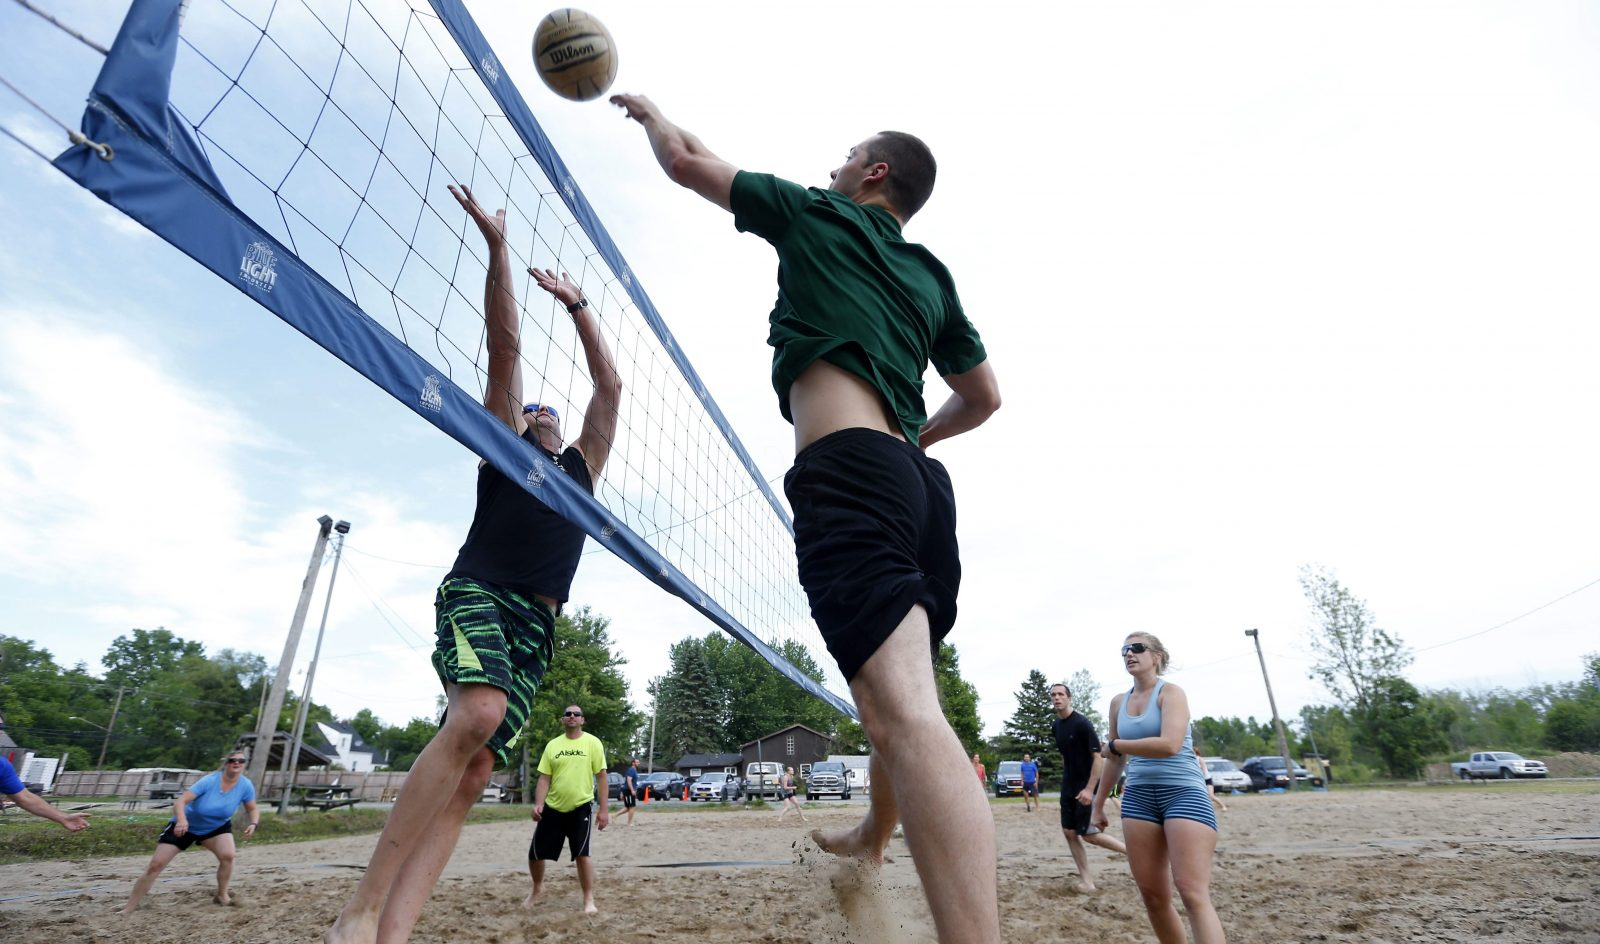 Members of the Buffalo Social Volleyball Club play a match on the sand courts at the Angry Buffalo at The Rose Garden in Williamsville. (Mark Mulville/Buffalo News)